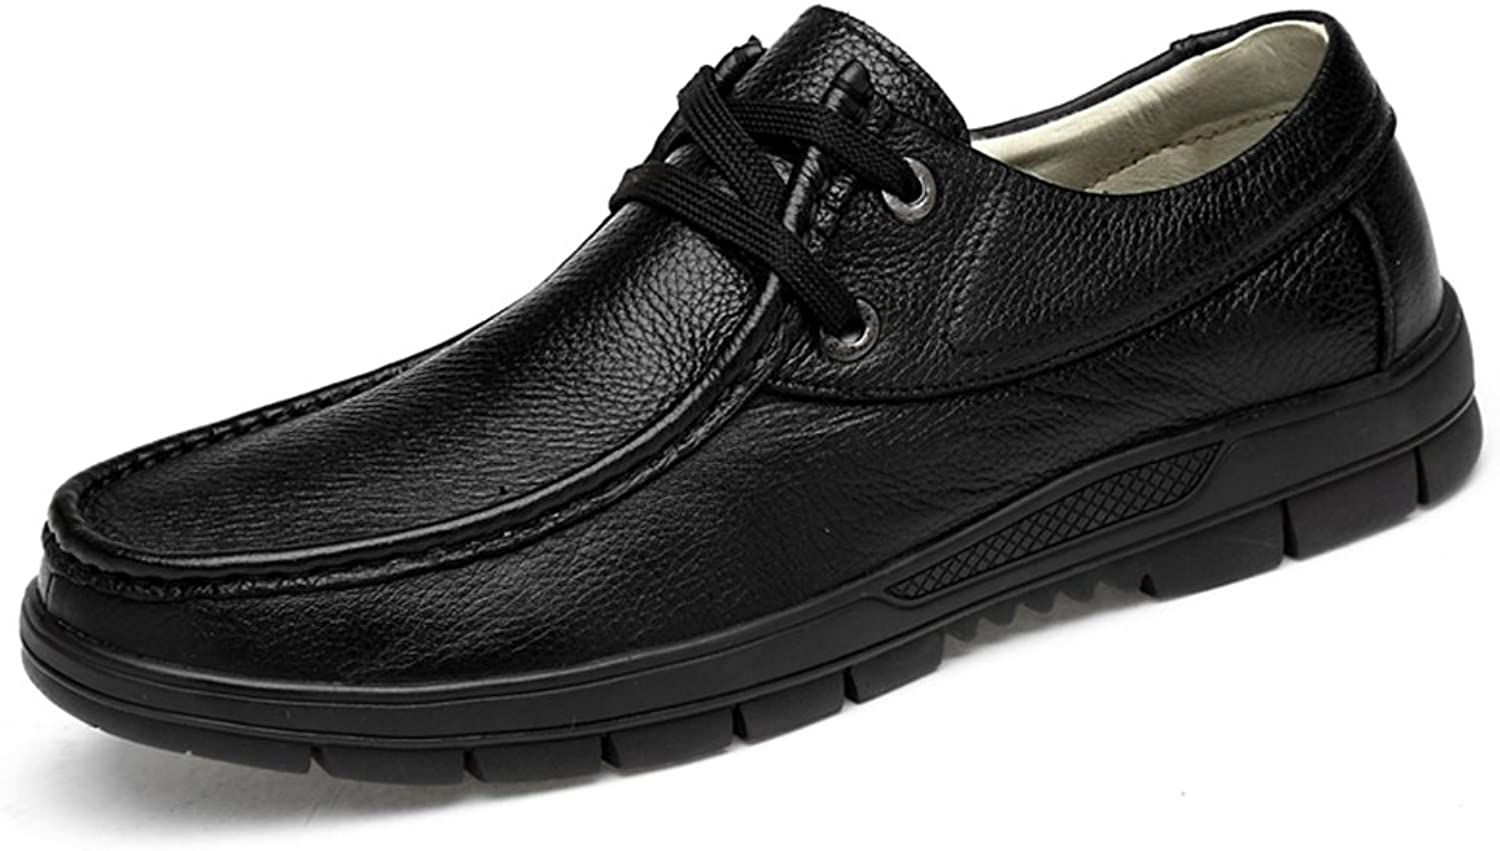 Men's shoes Leather Spring Summer Driving shoes Comfort Loafers & Slip-Ons Walking shoes Breathable Hollow-Out Split Joint for Casual Office & Career Formal Business Work (color   A, Size   41)